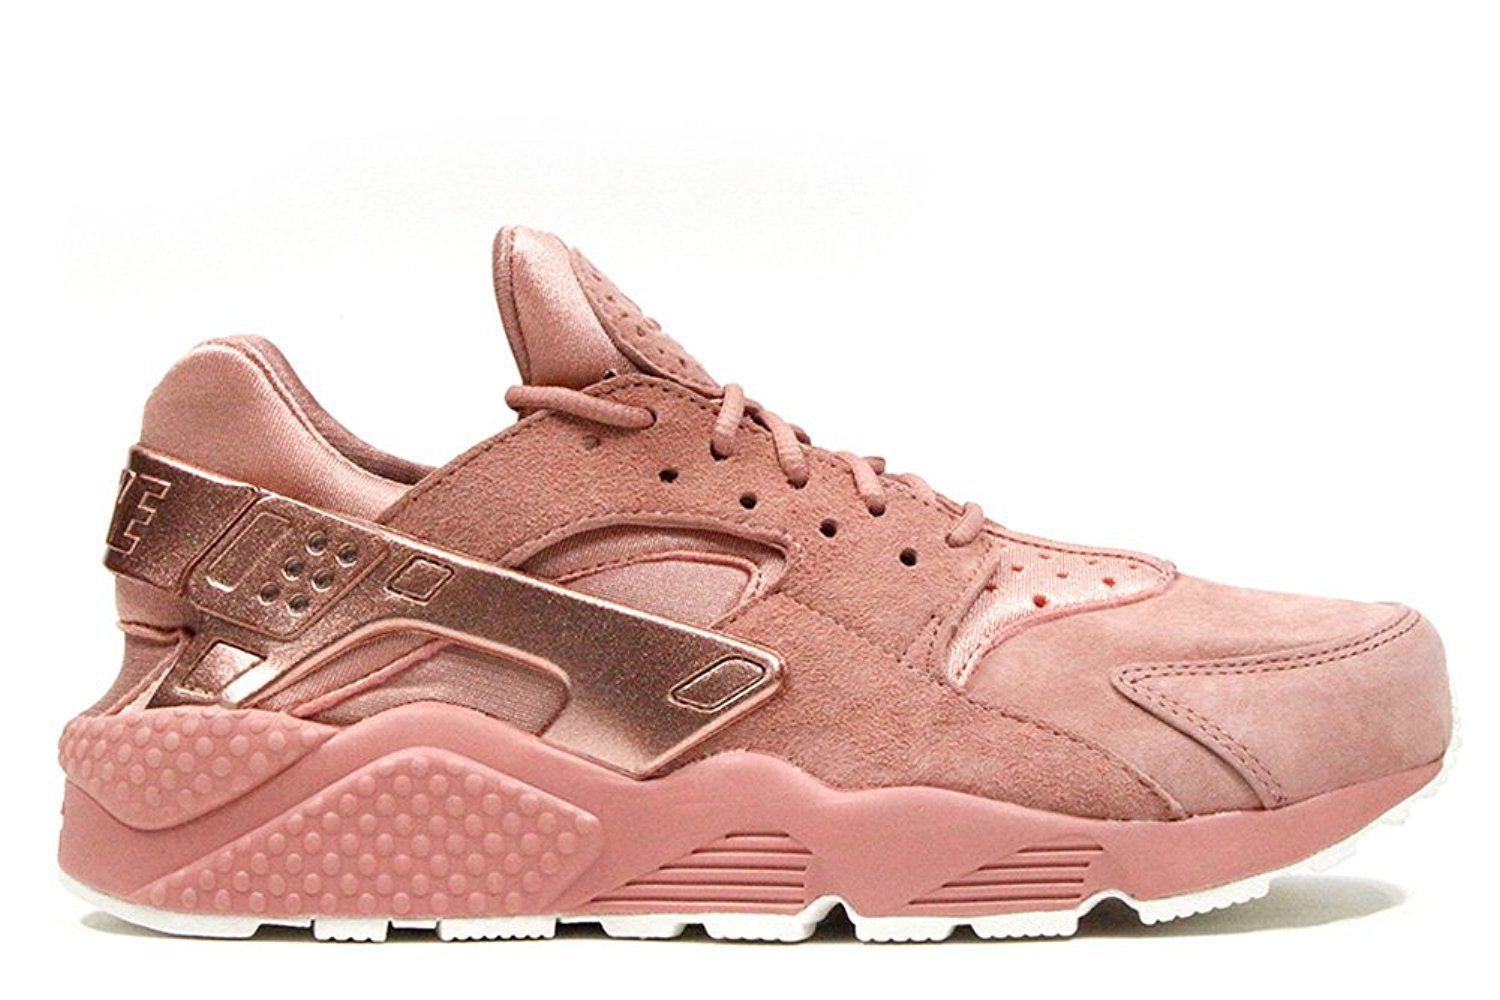 brand new 4c4da f2955 Galleon - NIKE Air Huarache Run Premium Men s Running Shoes Rust Pink MTLC  Red Bronze-Sail 704830-601 (12 D(M) US)